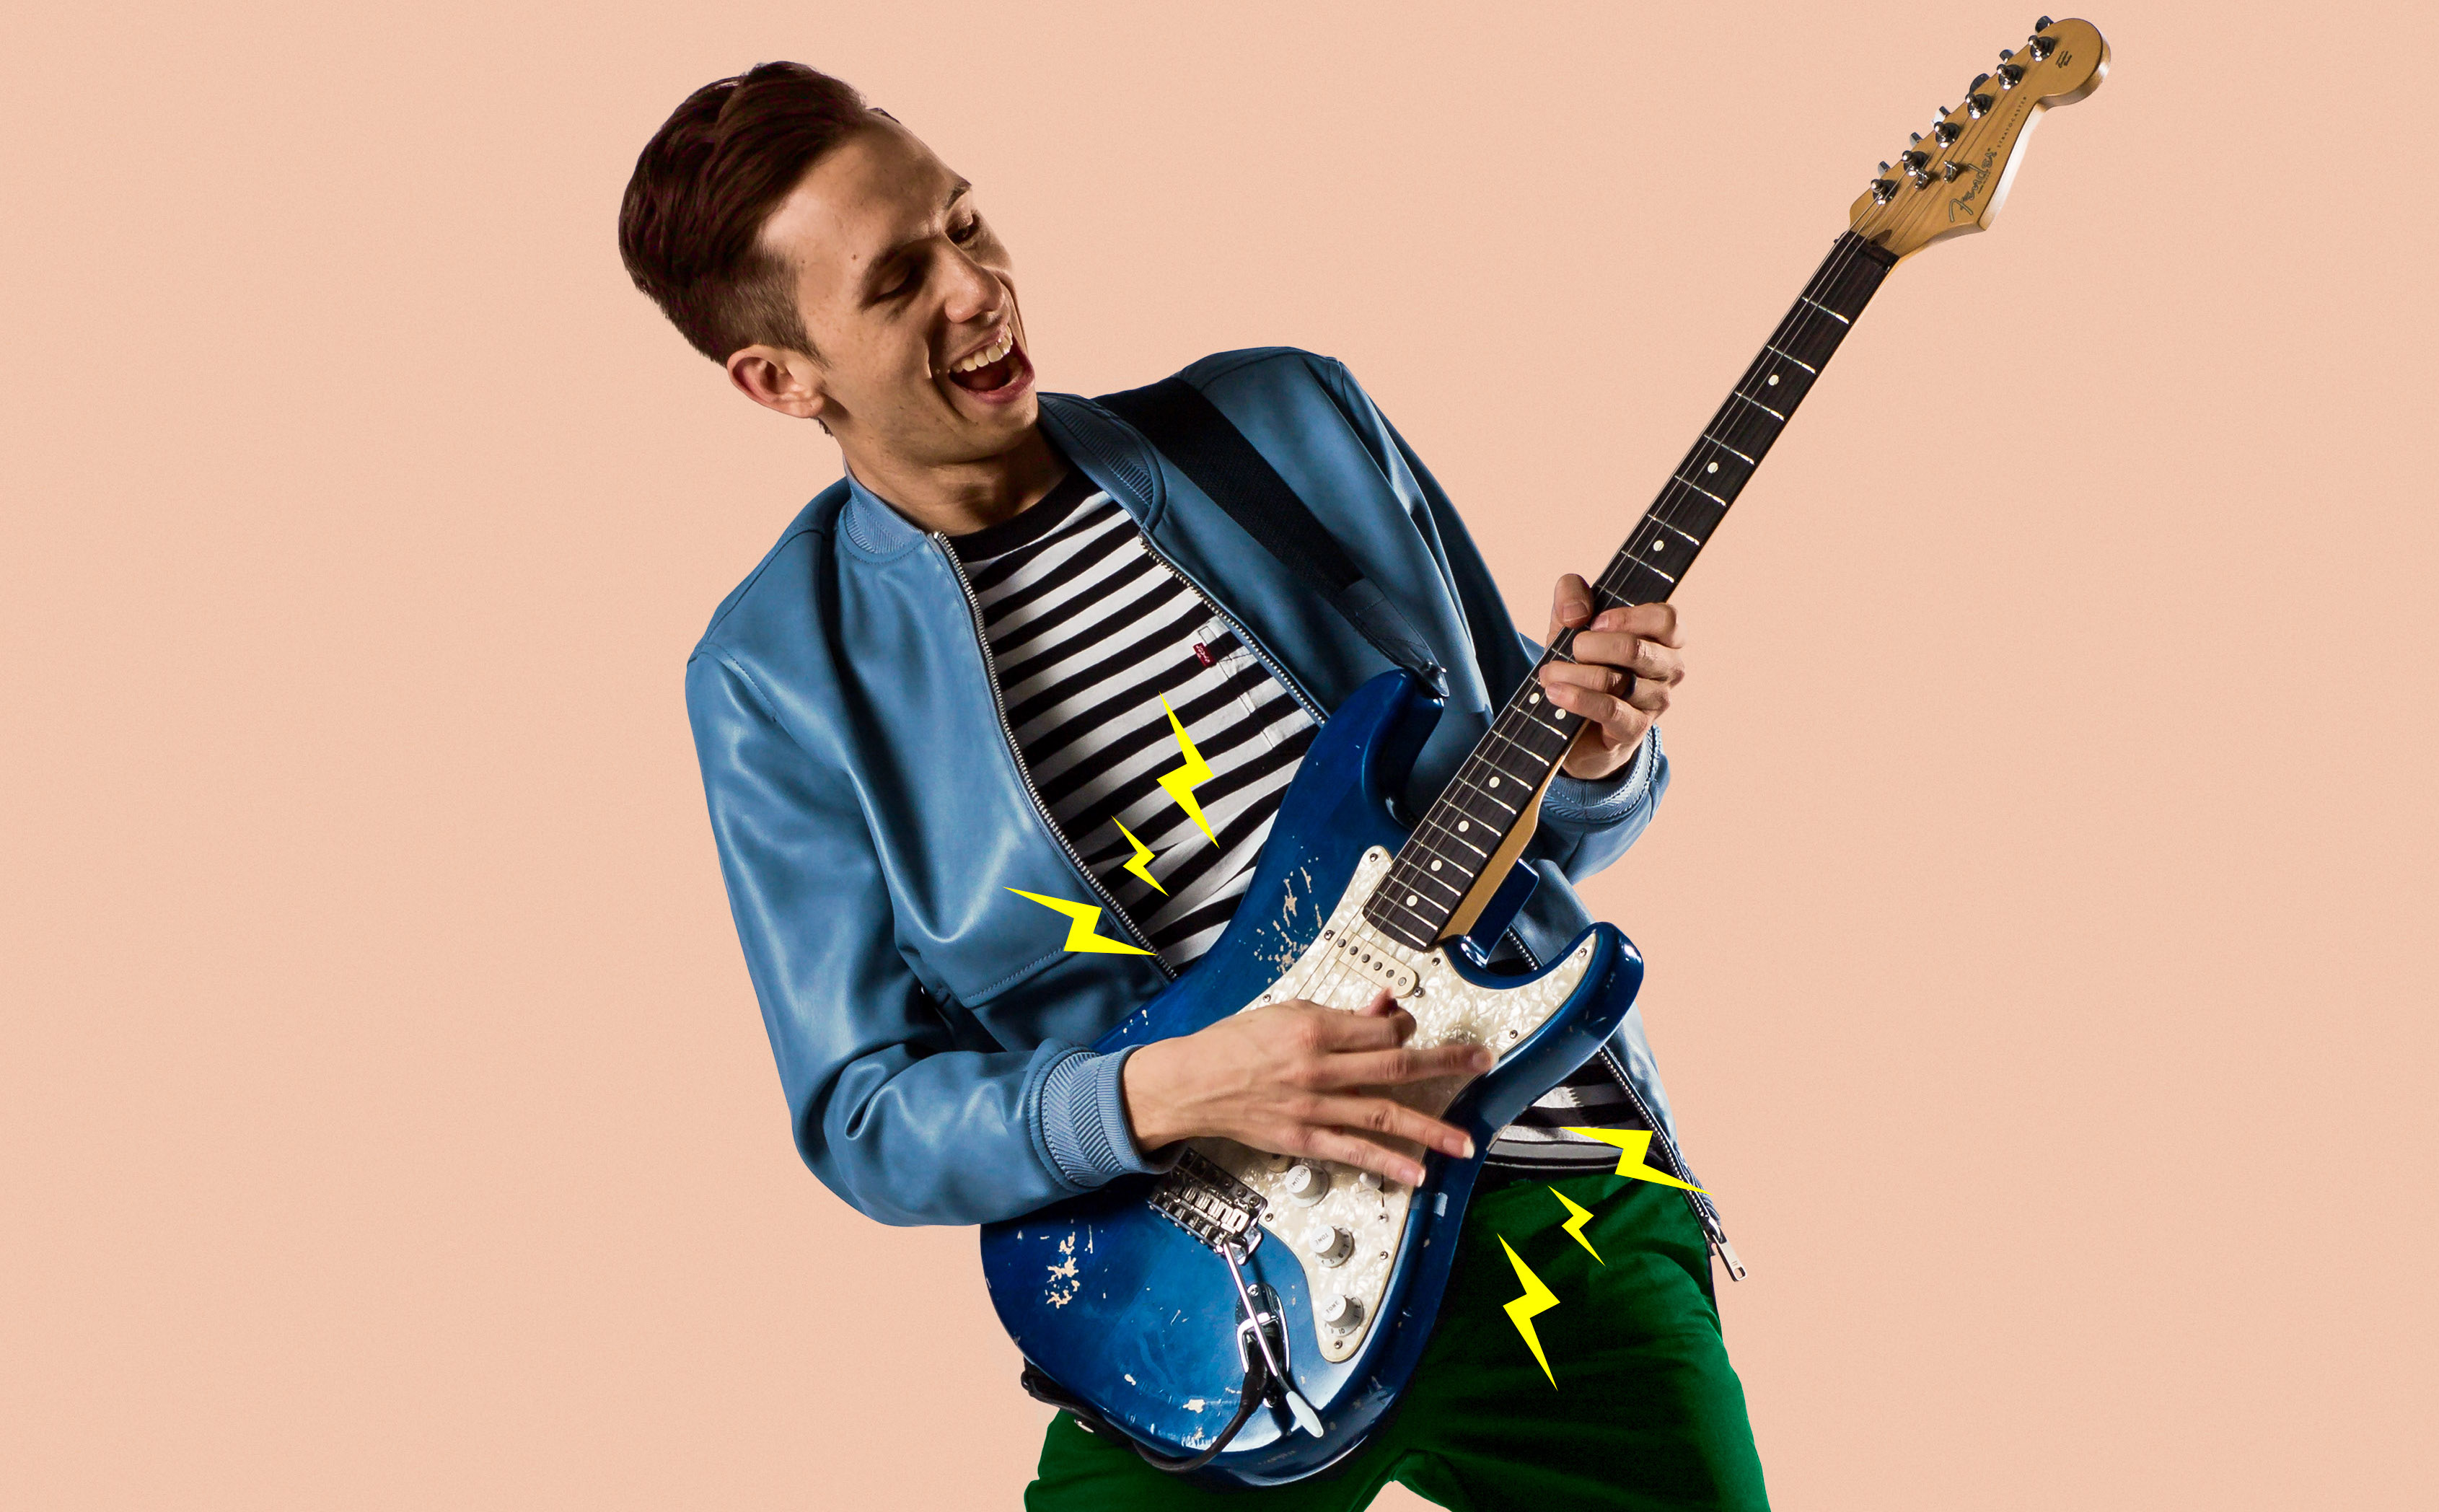 Vulfpeck Tour 2020 Vulfpeck guitarist Cory Wong announces huge UK tour for February 2020